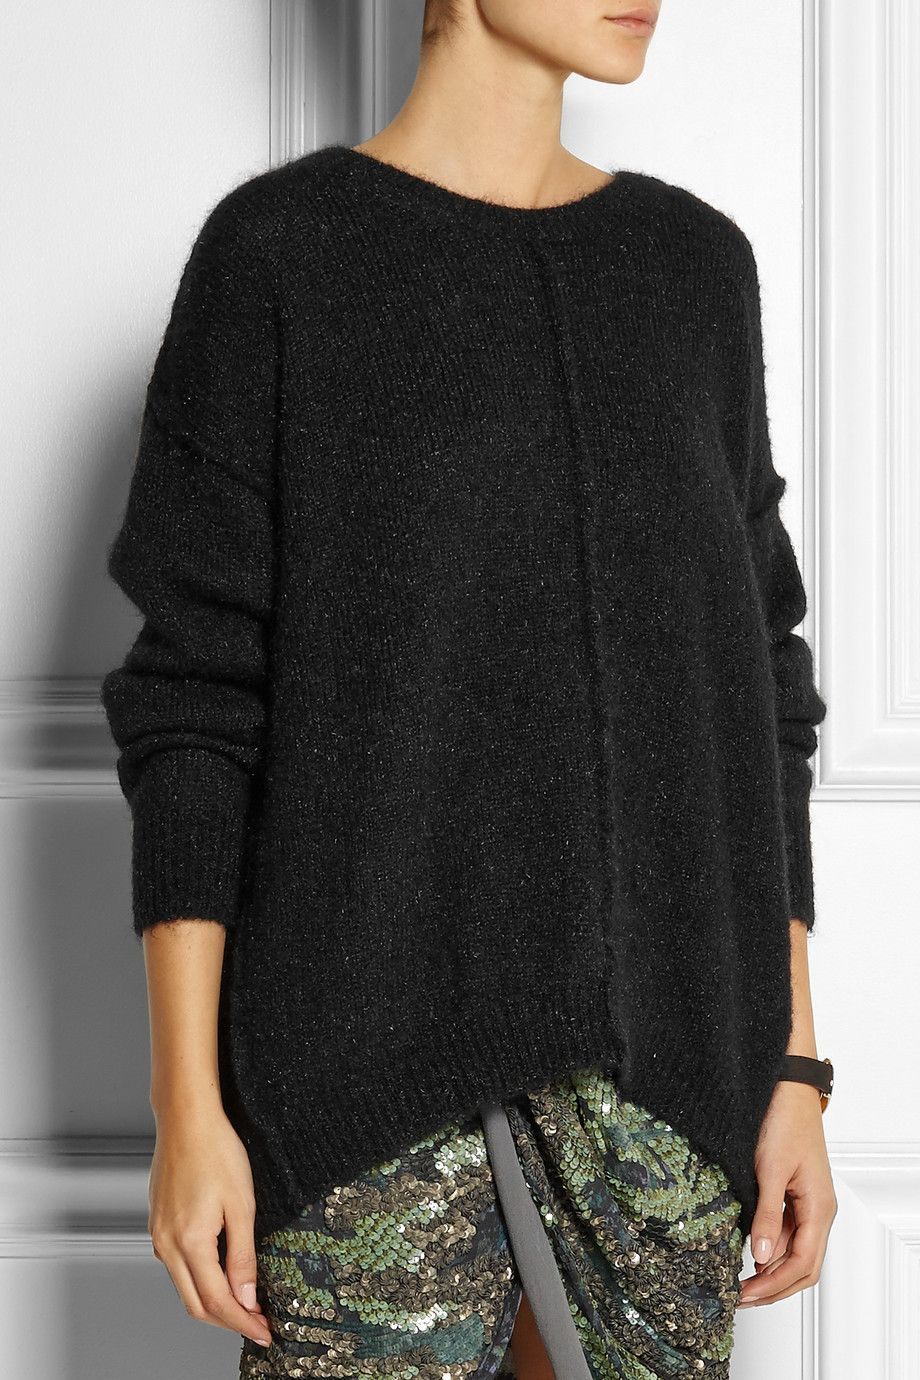 4caa578d891 Isabel Marant | Tam oversized knitted sweater | wear. | Fashion ...